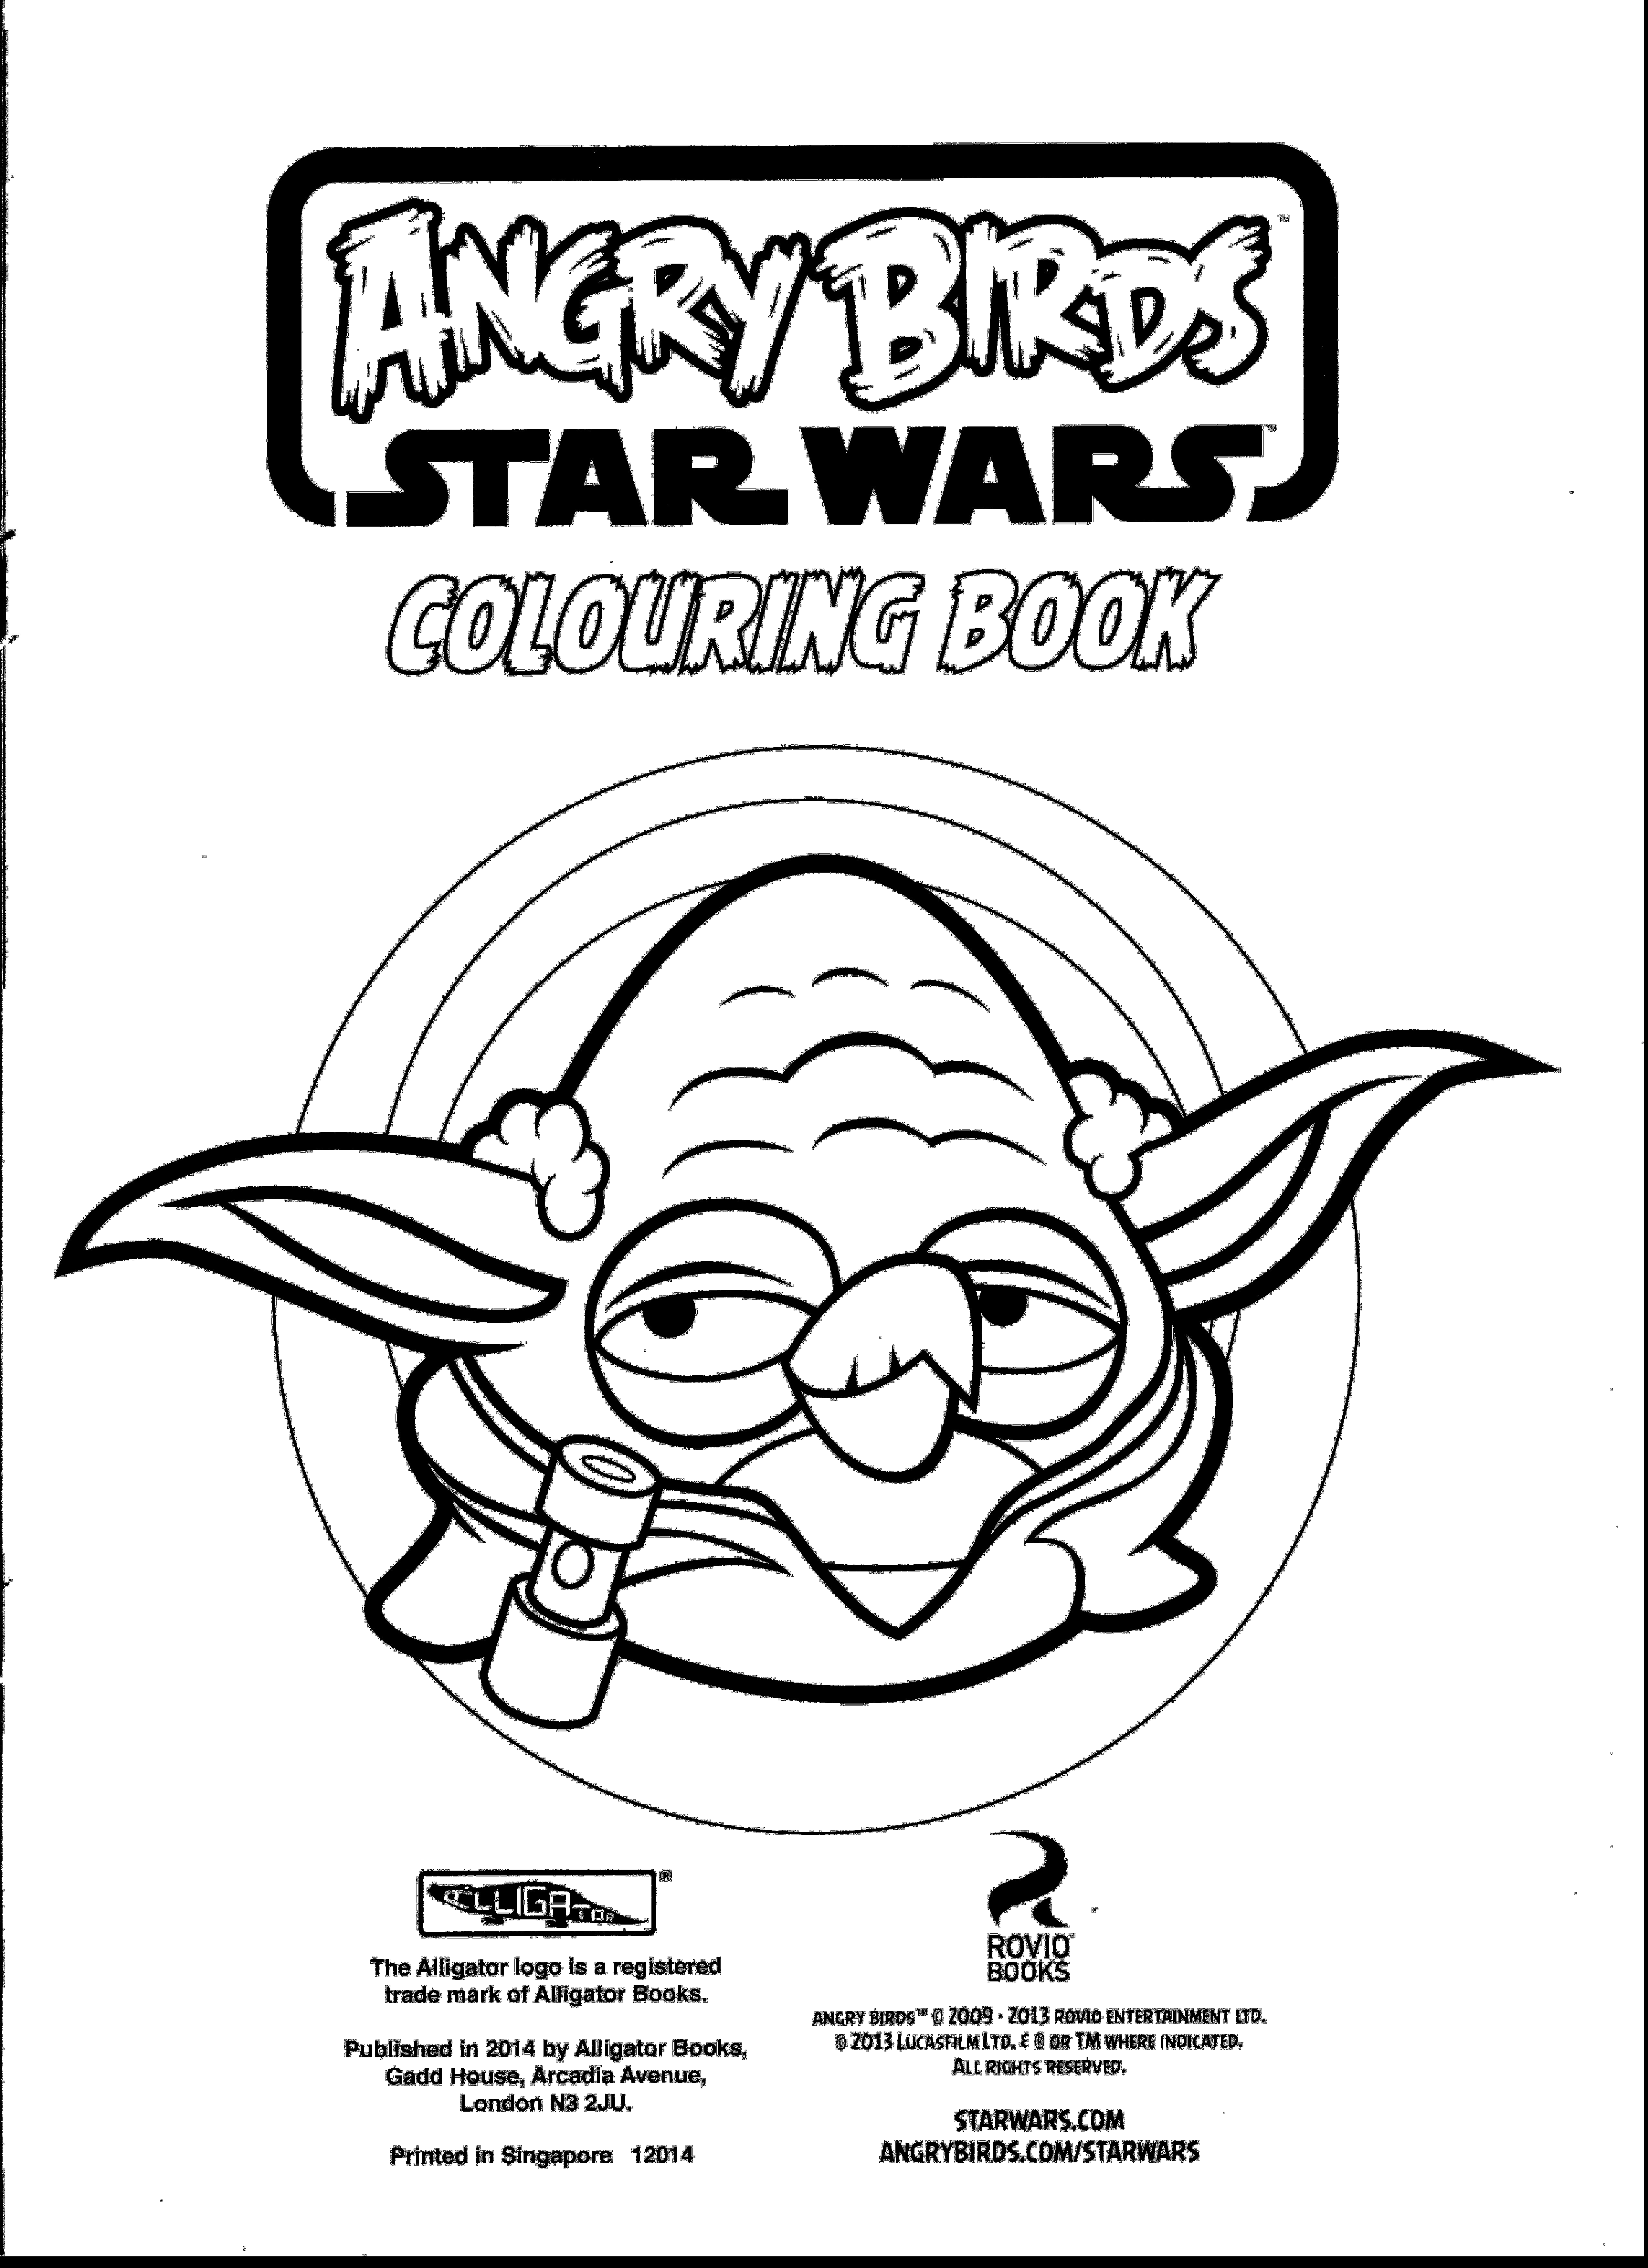 anger coloring pages Download-Star Wars Angry Bird Coloring Pages Coloring Pages Rapunzel Archives Page 3 3 Katesgrove 19-b